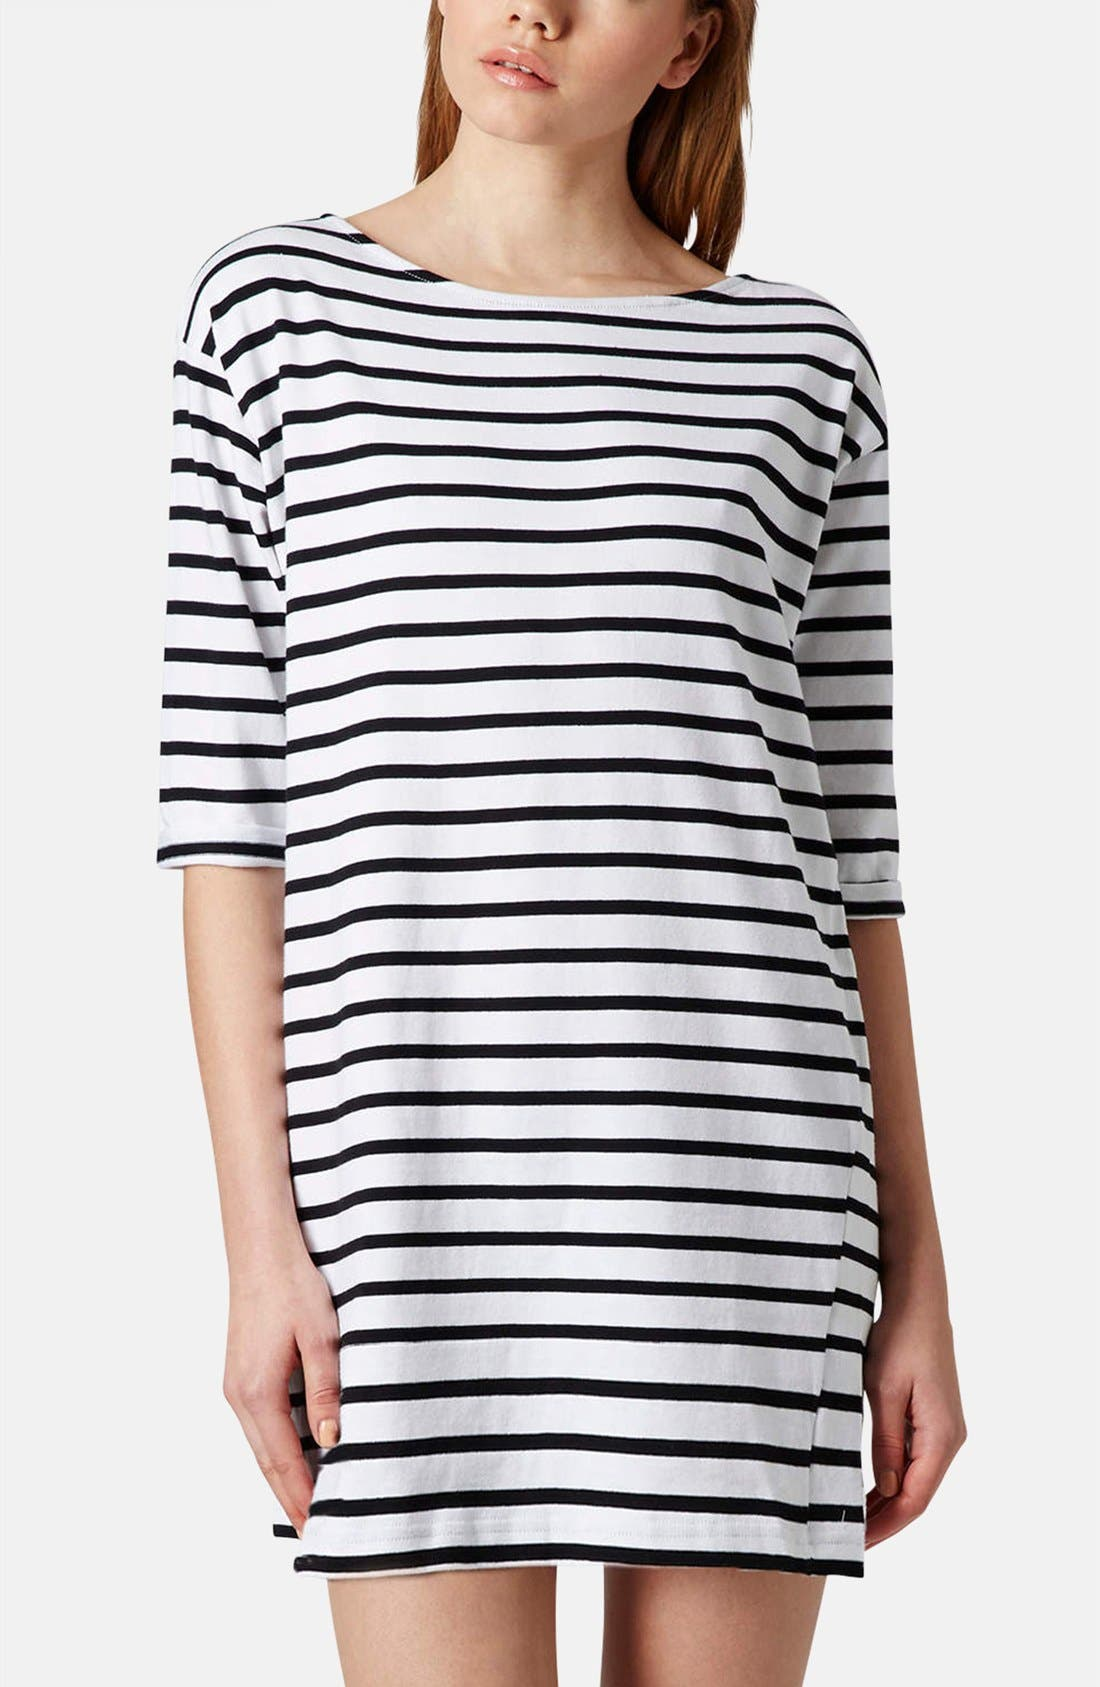 Alternate Image 1 Selected - Topshop Stripe Cotton Tunic Dress (Petite)